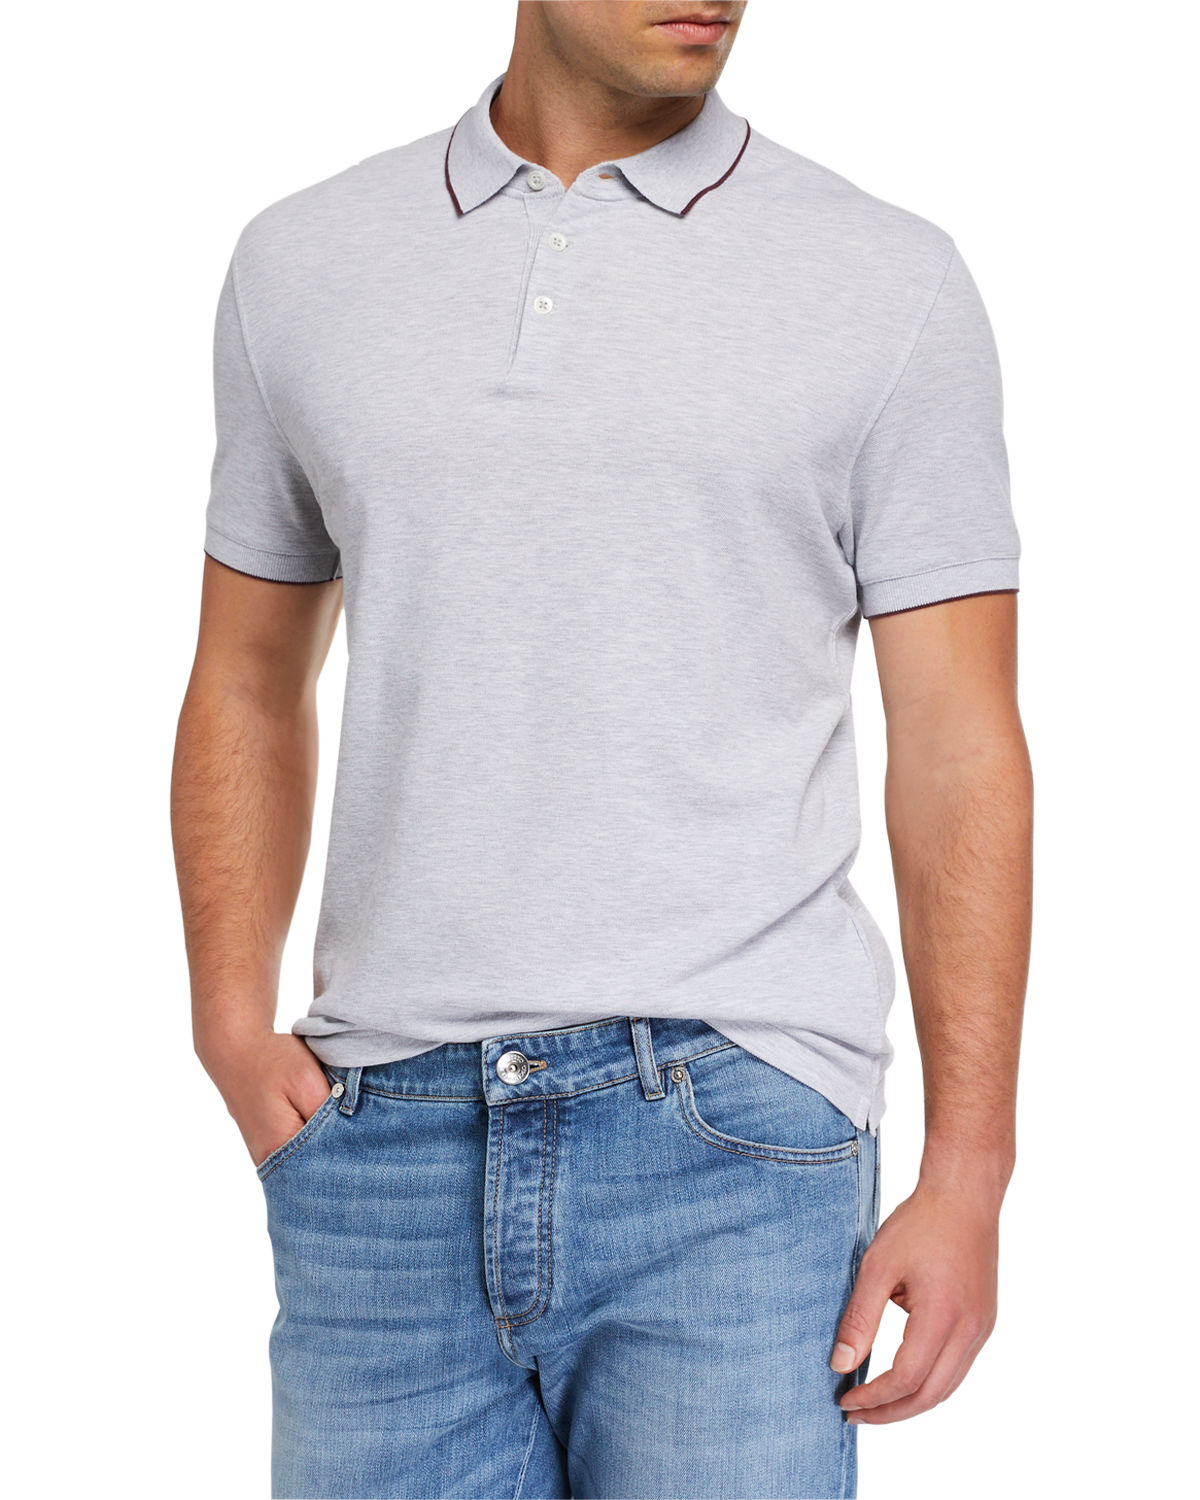 Brunello Cucinelli T-shirts MEN'S CONTRAST-TIPPED POLO SHIRT